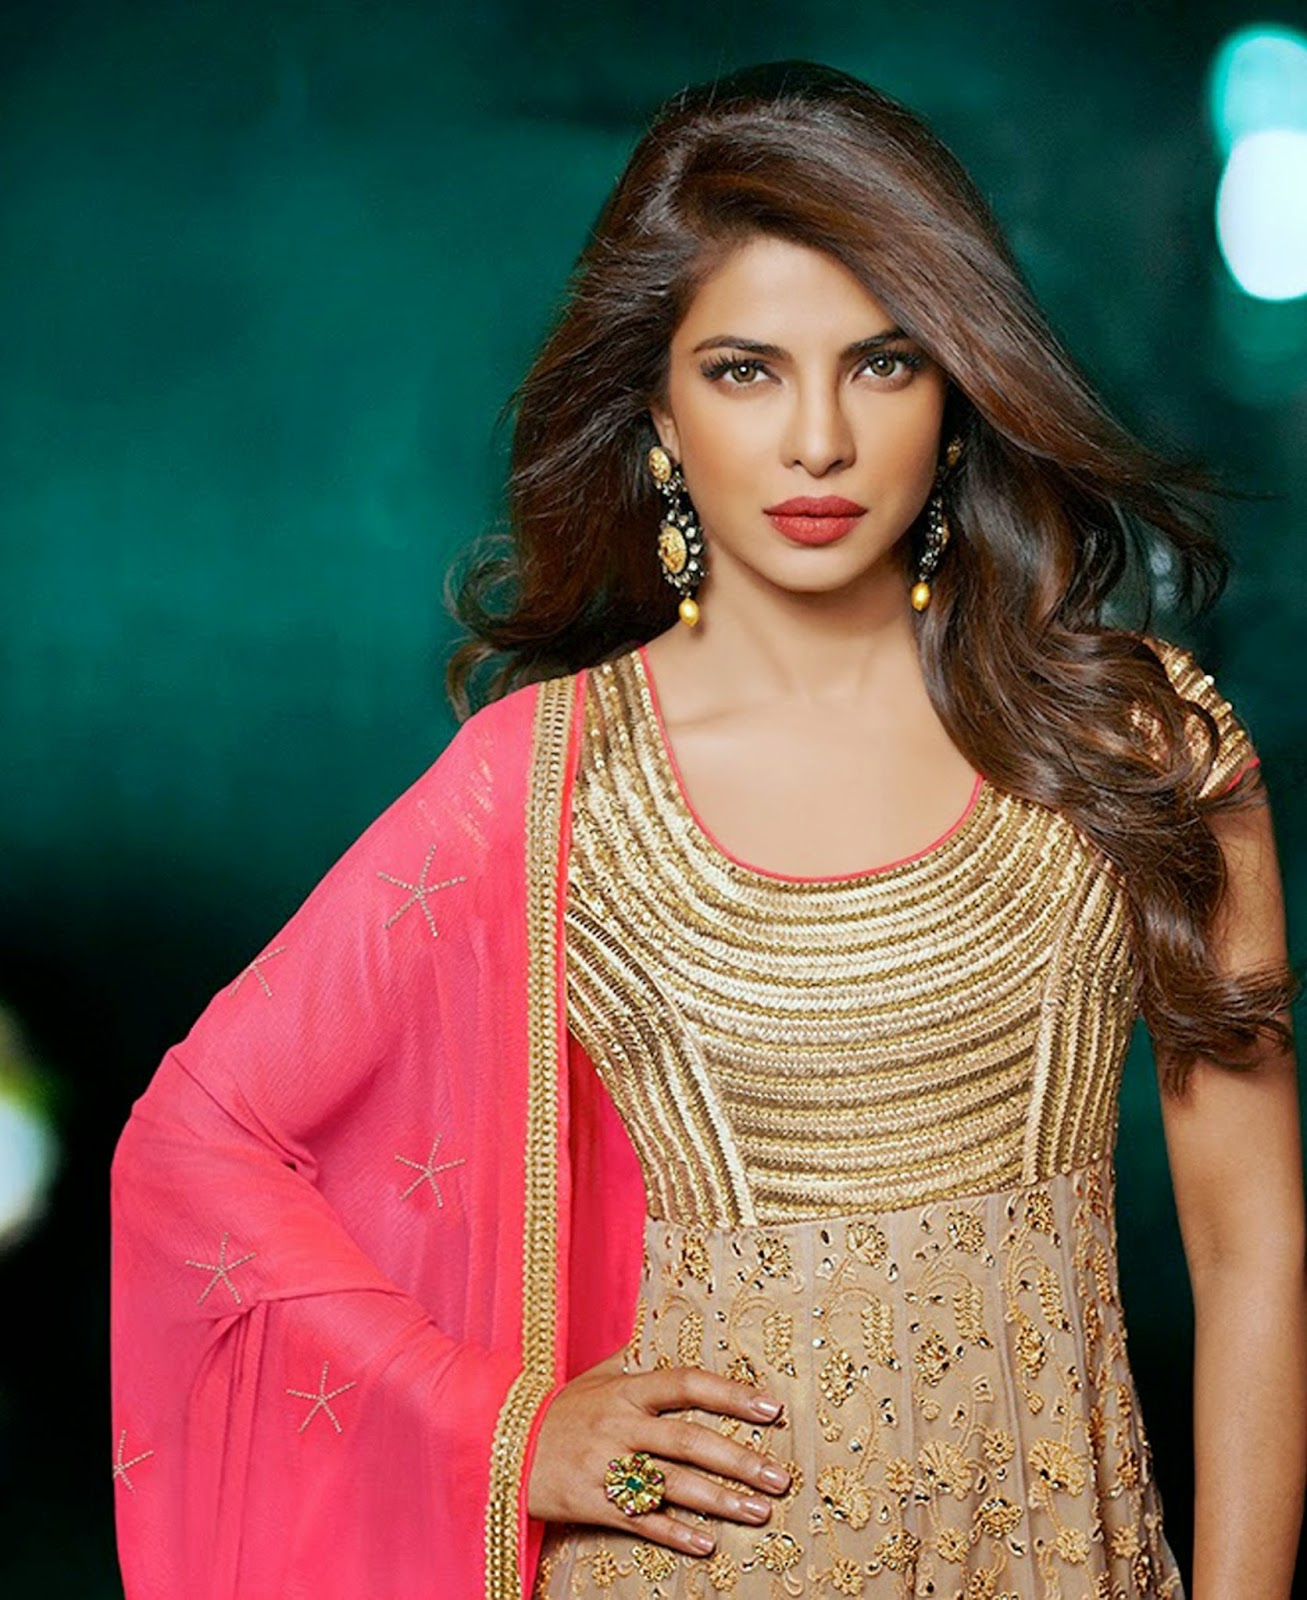 STAR CELEBRITY WALLPAPERS: Priyanka Chopra HD Wallpapers